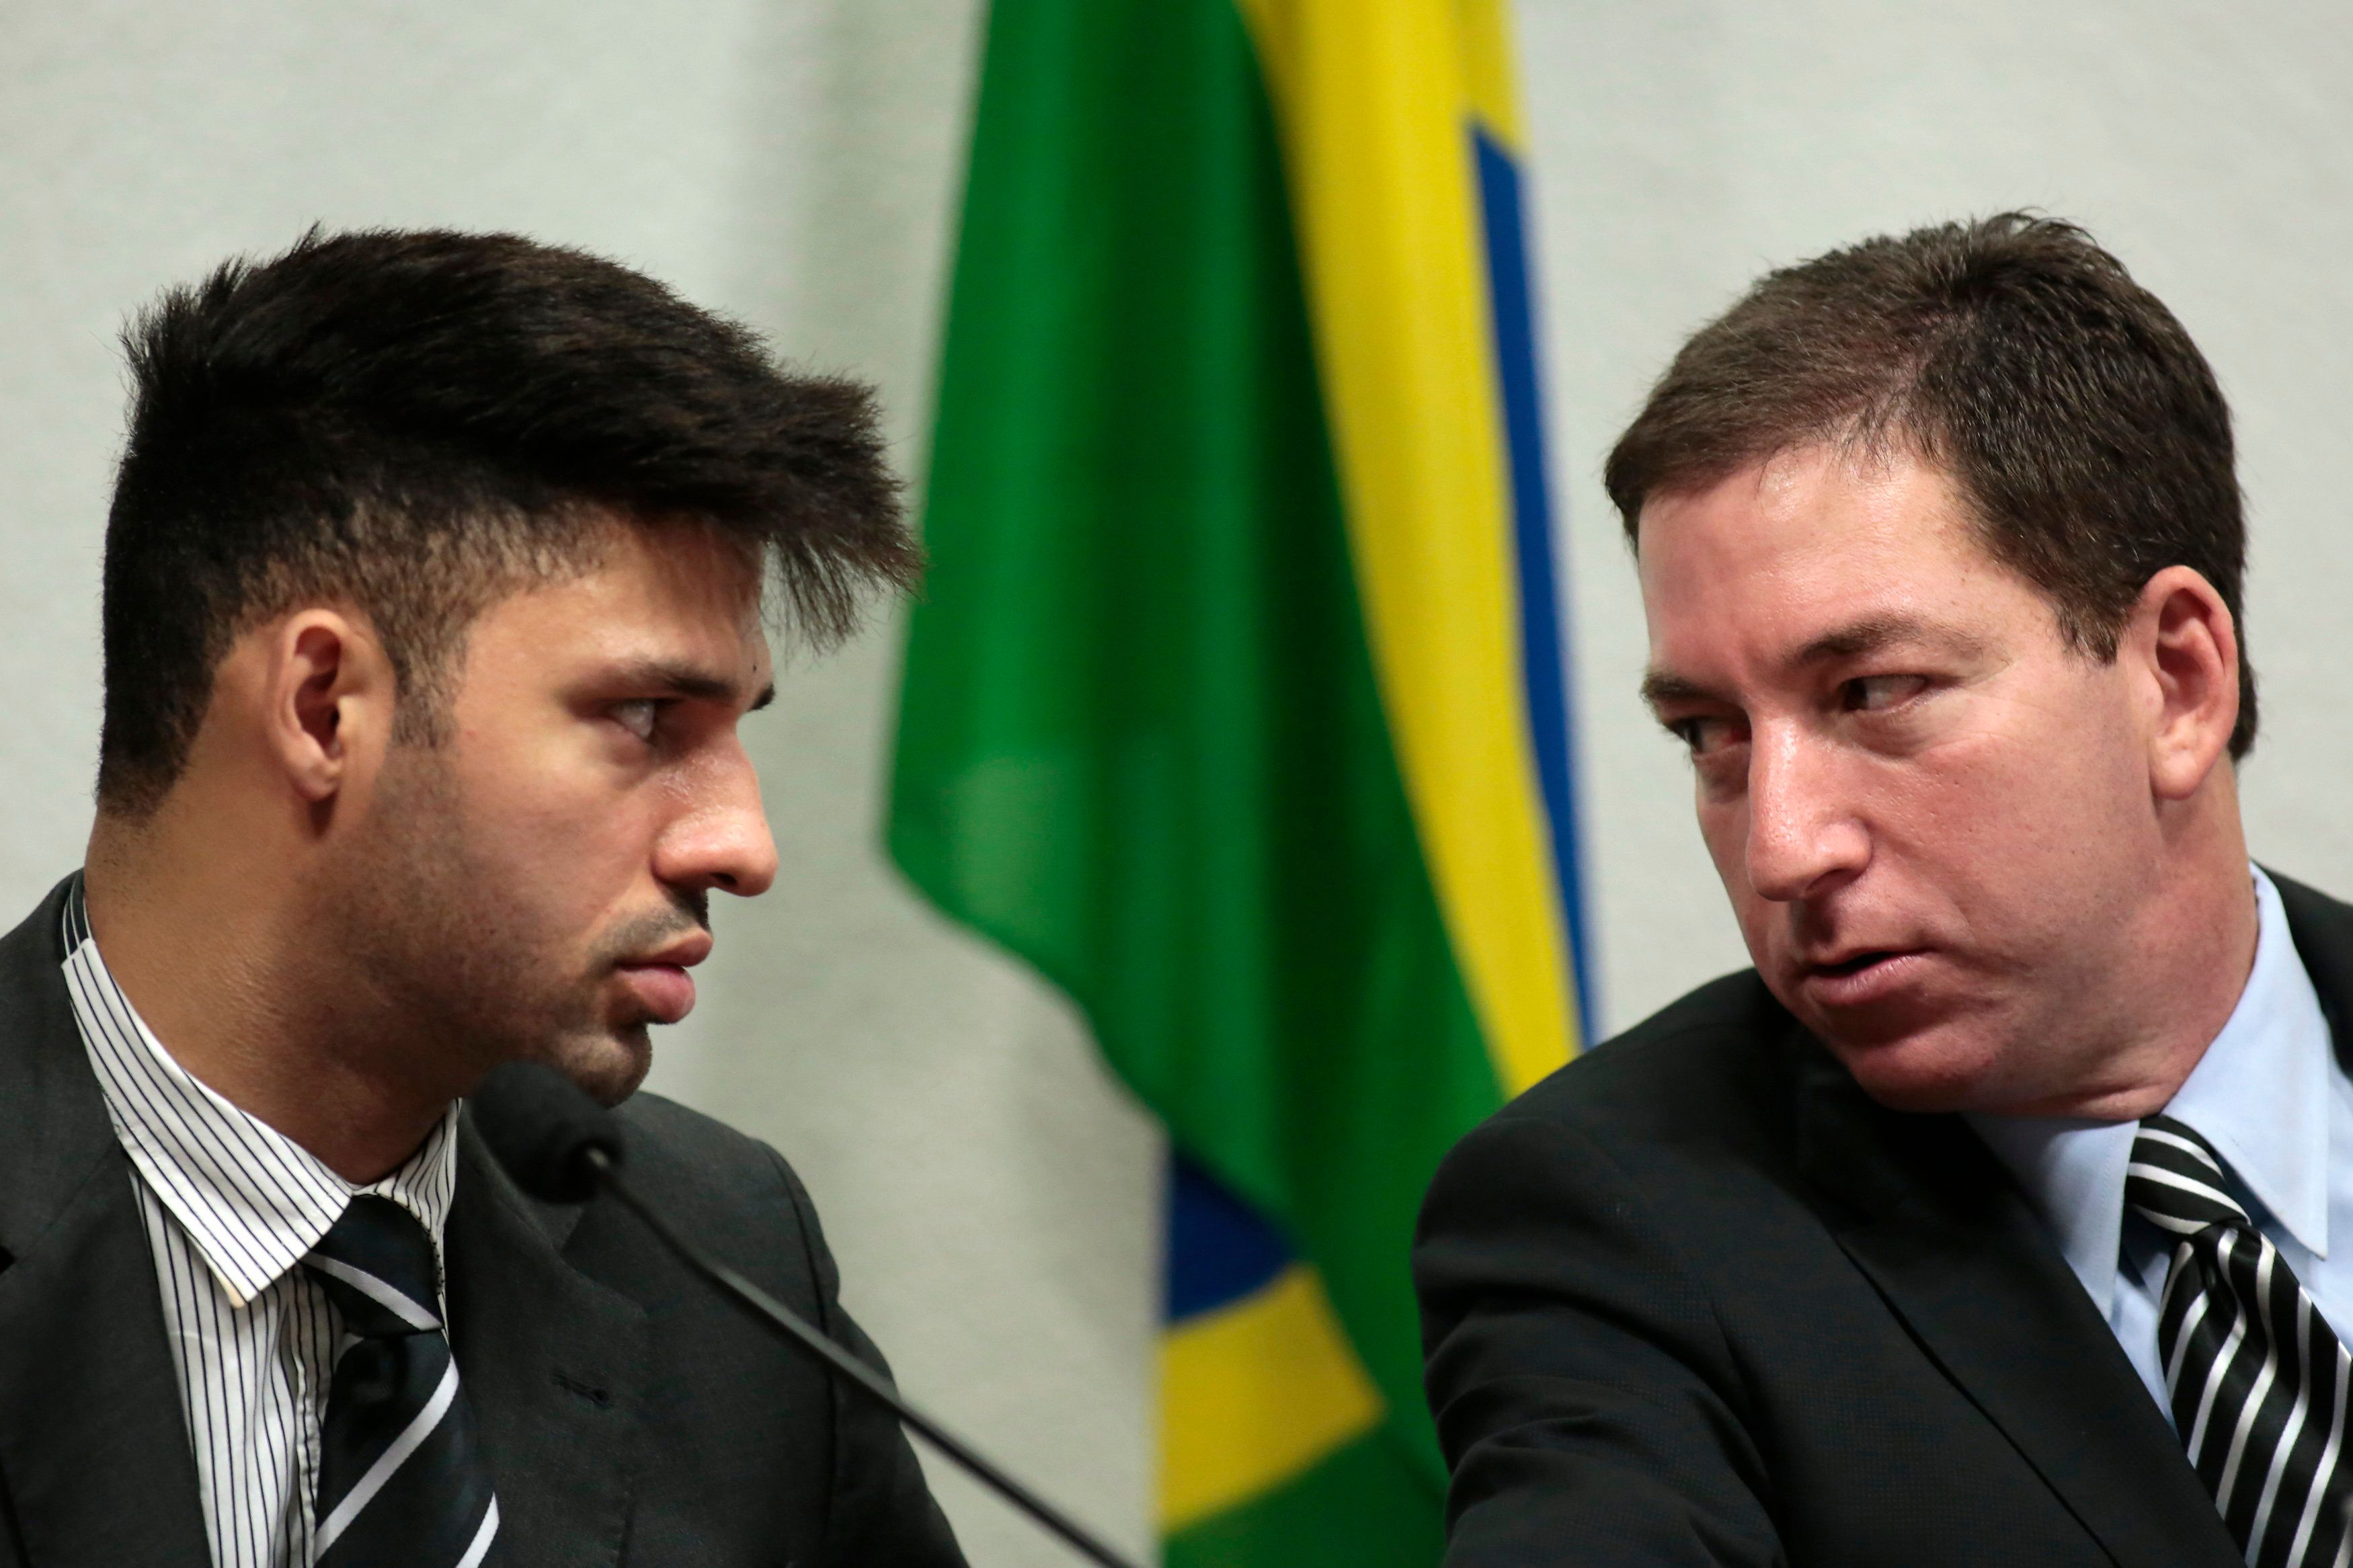 Glenn Greenwald (R), American journalist who first published the documents leaked by former NSA contractor Edward Snowden, speaks with partner David Miranda as Greenwald testifies in front of the Brazilian Federal Senate's Parliamentary Inquiry Committee, established to investigate allegations of spying by United States on Brazil, in Brasilia October 9, 2013. REUTERS/Ueslei Marcelino (BRAZIL - Tags: POLITICS MEDIA)